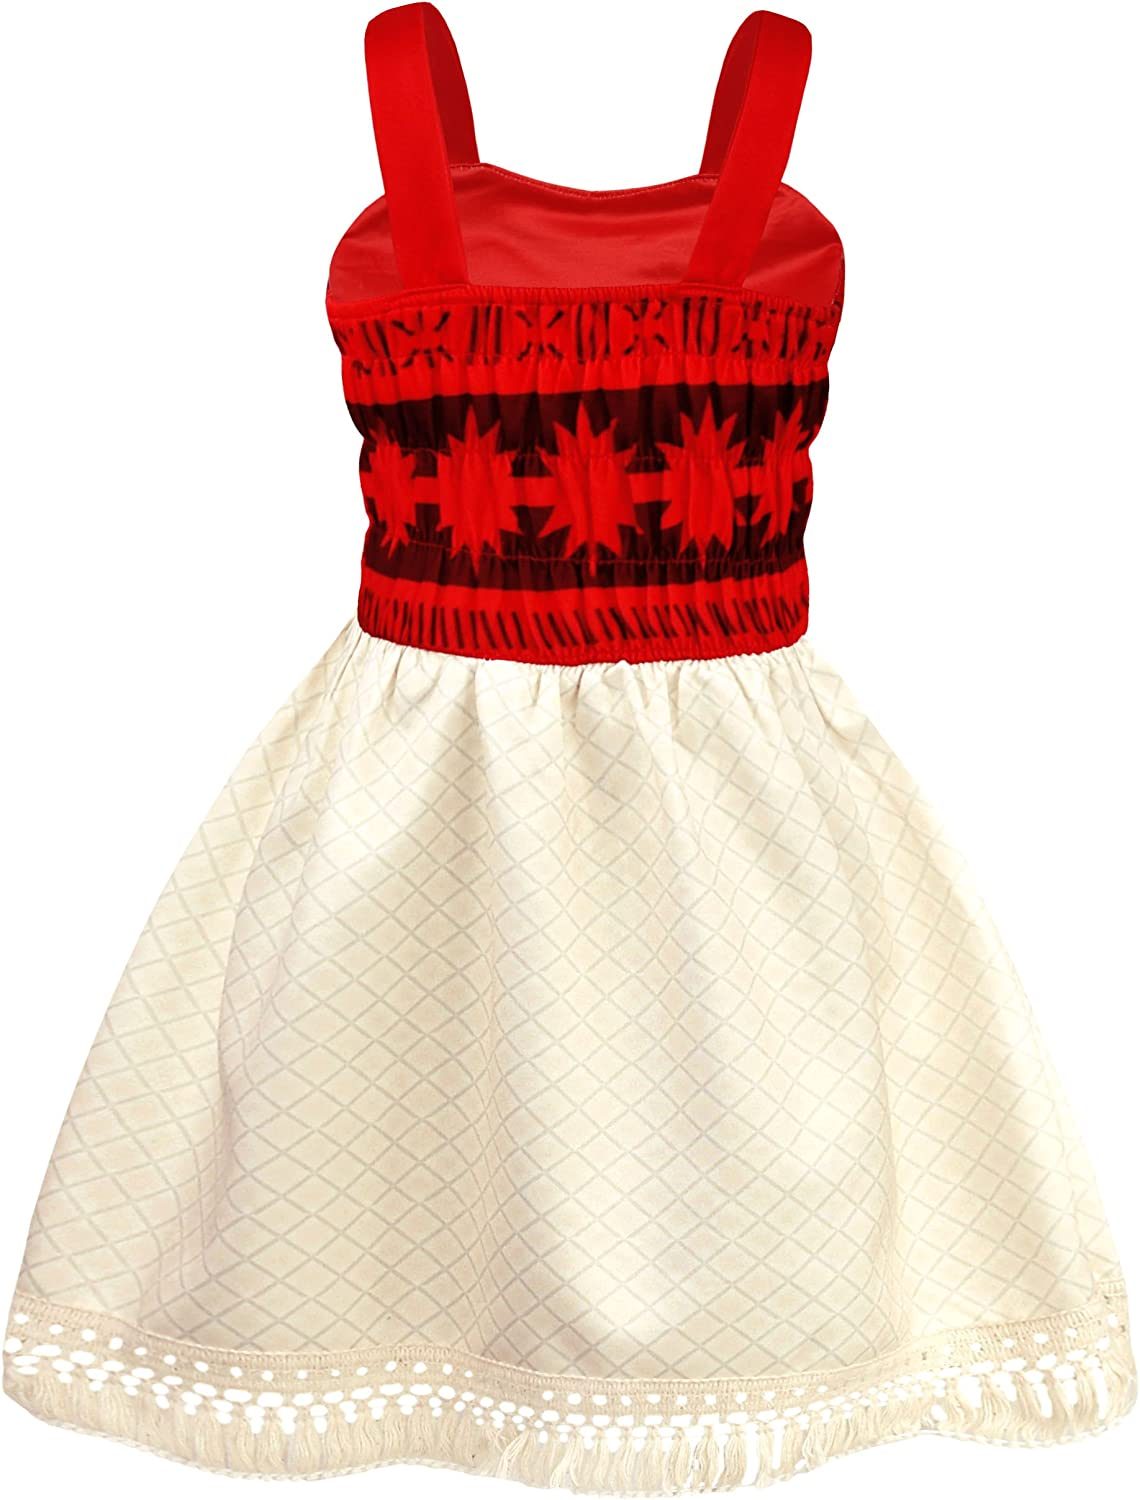 AmzBarley Princess Dress for Girls Fancy Party Cosplay Dress up Outfits Costumes Age 1-12 Years